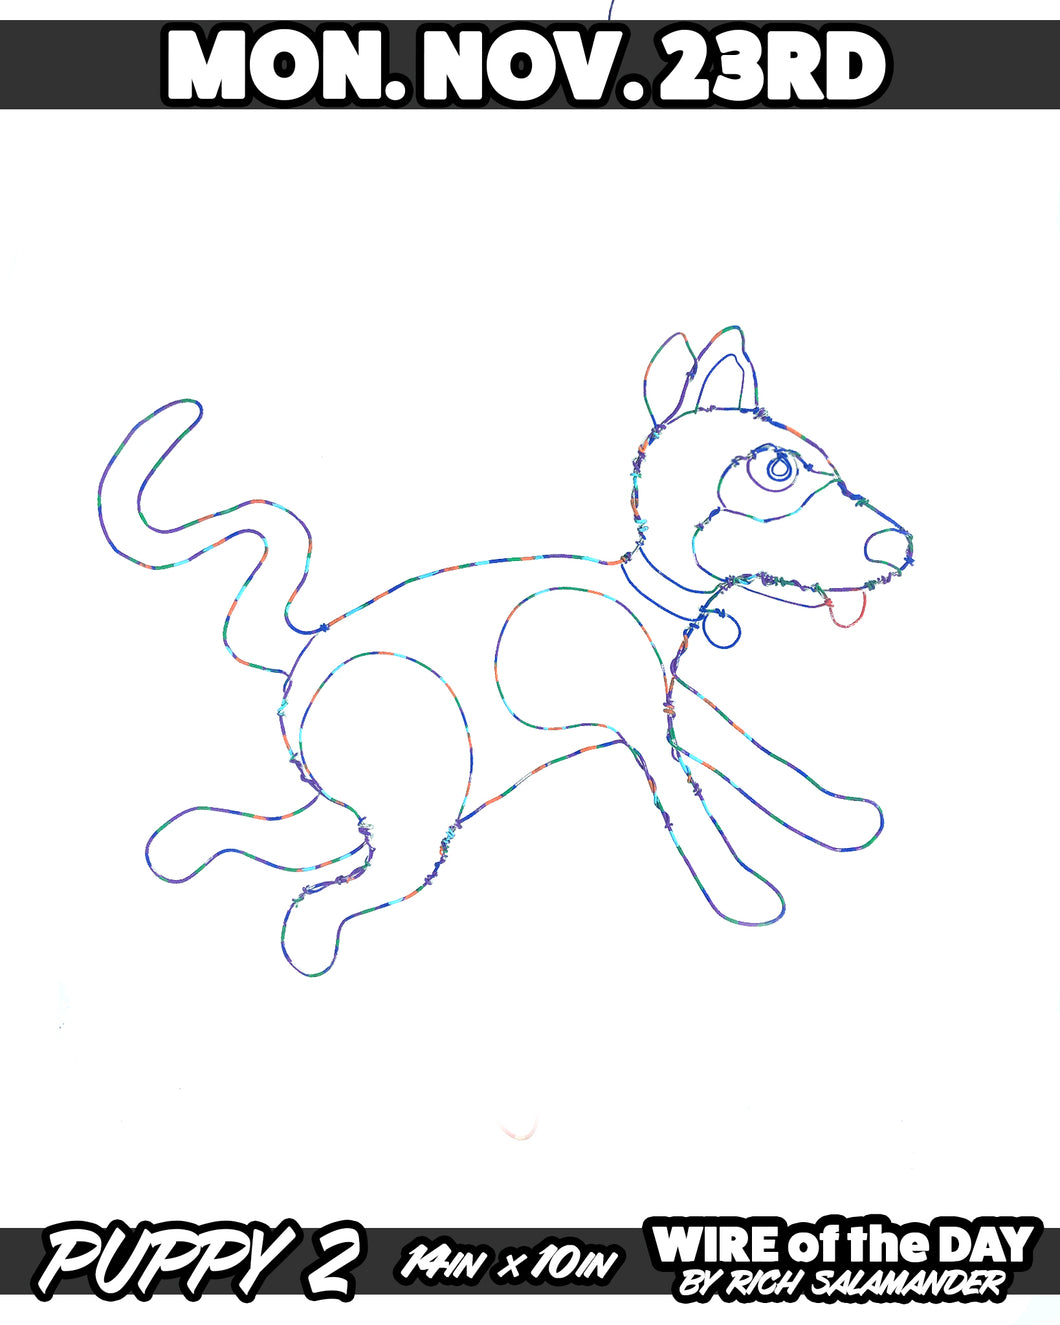 WIRE of the DAY PUPPY 2